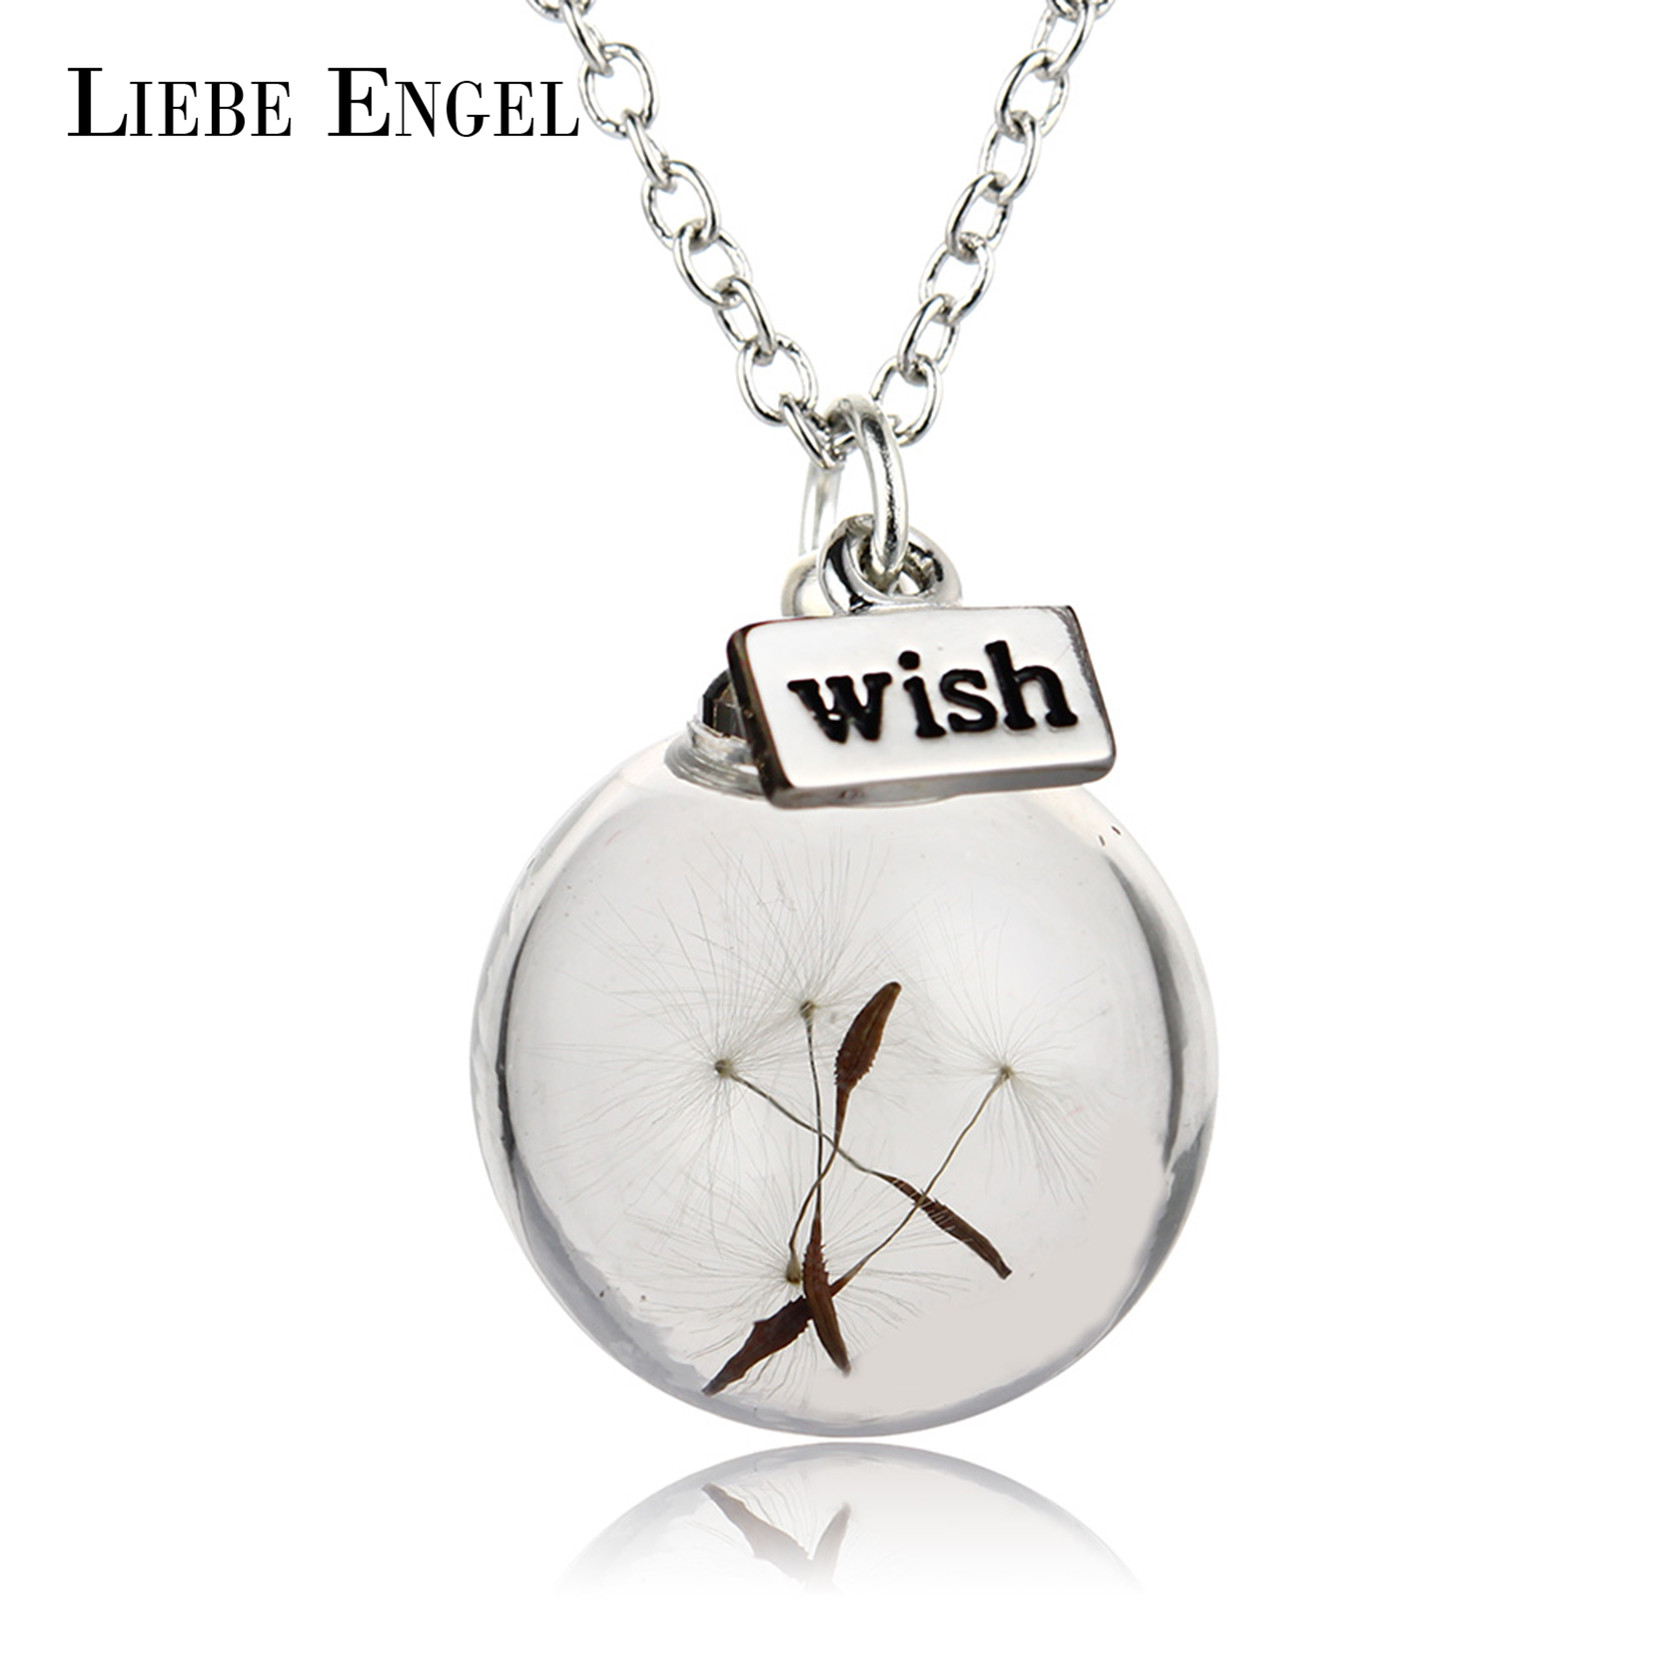 LIEBE ENGEL New Fashion Ball Ball Dandelion Pendant Wish Long Chain Statement Necklace Women